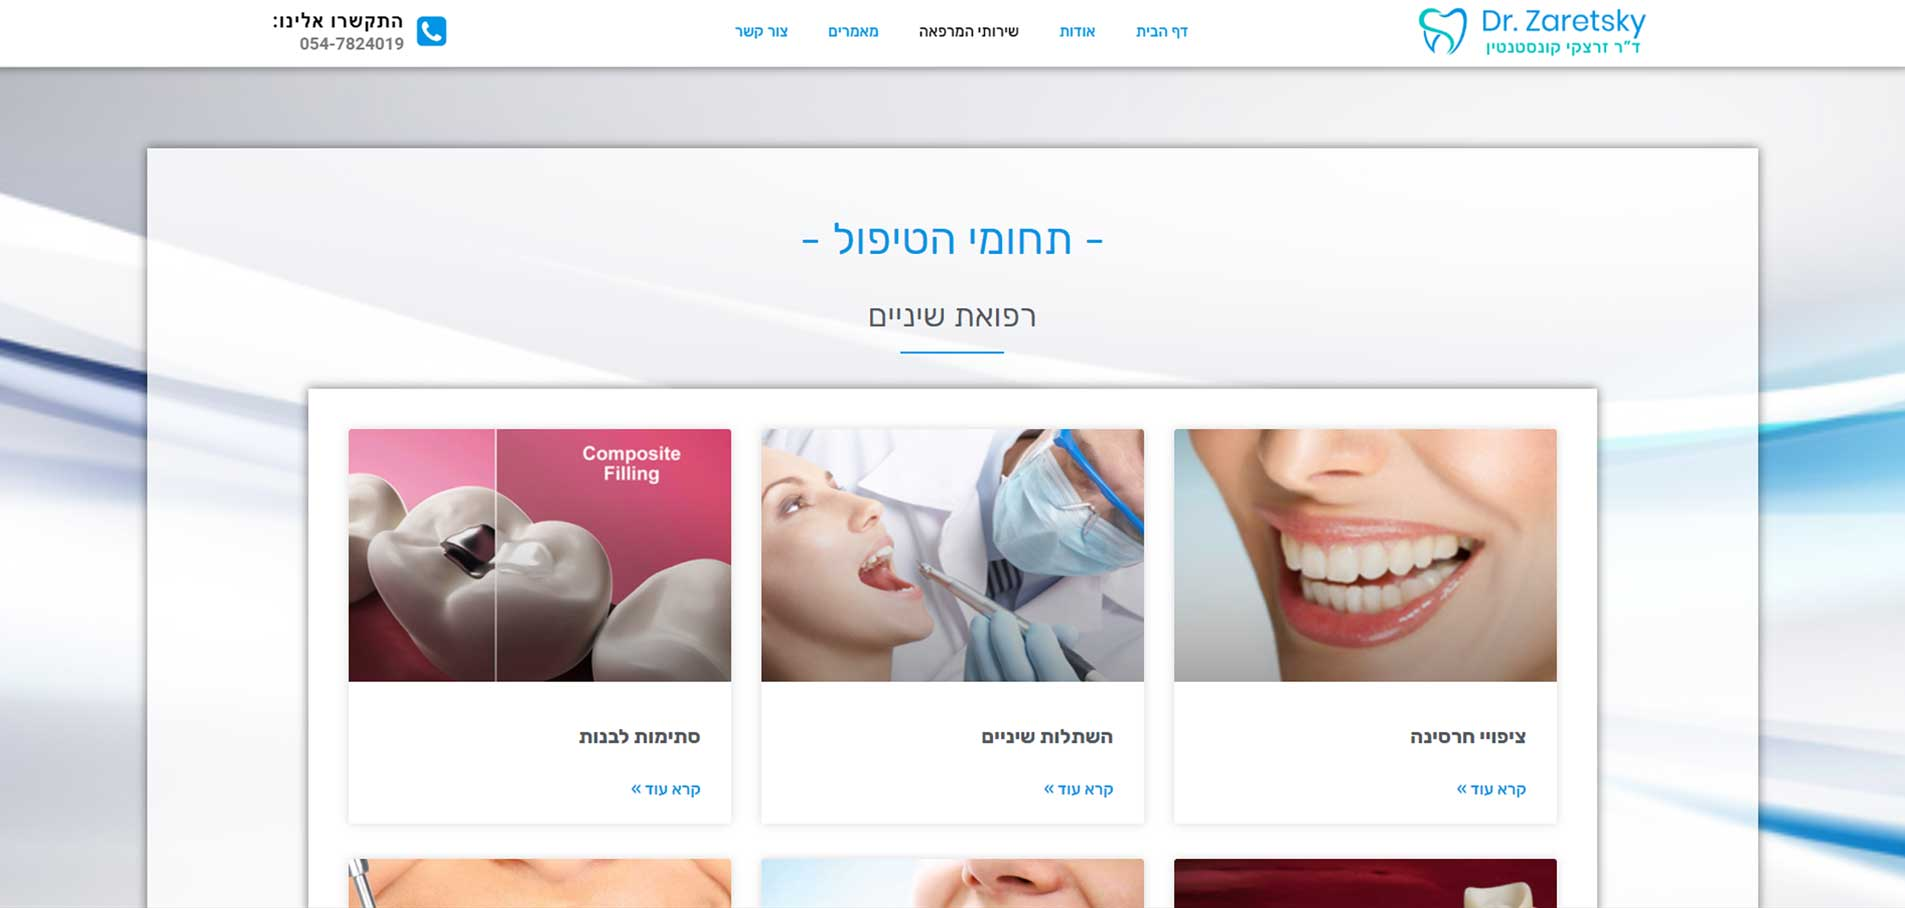 Dr. Zaretsky dental treatment web page